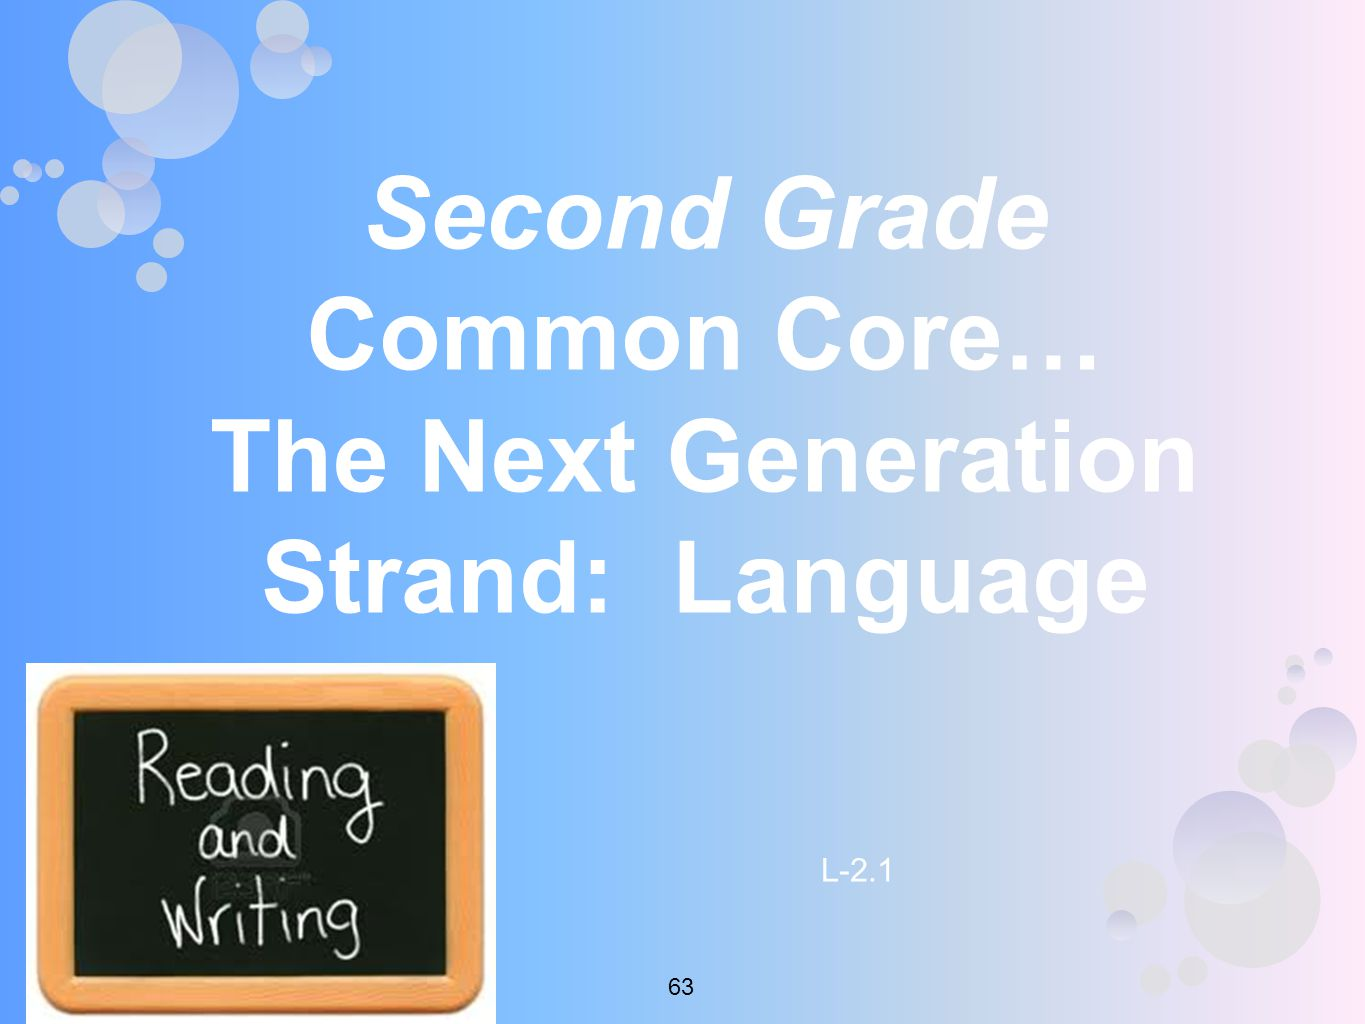 Second Grade Common Core… The Next Generation Strand: Language L